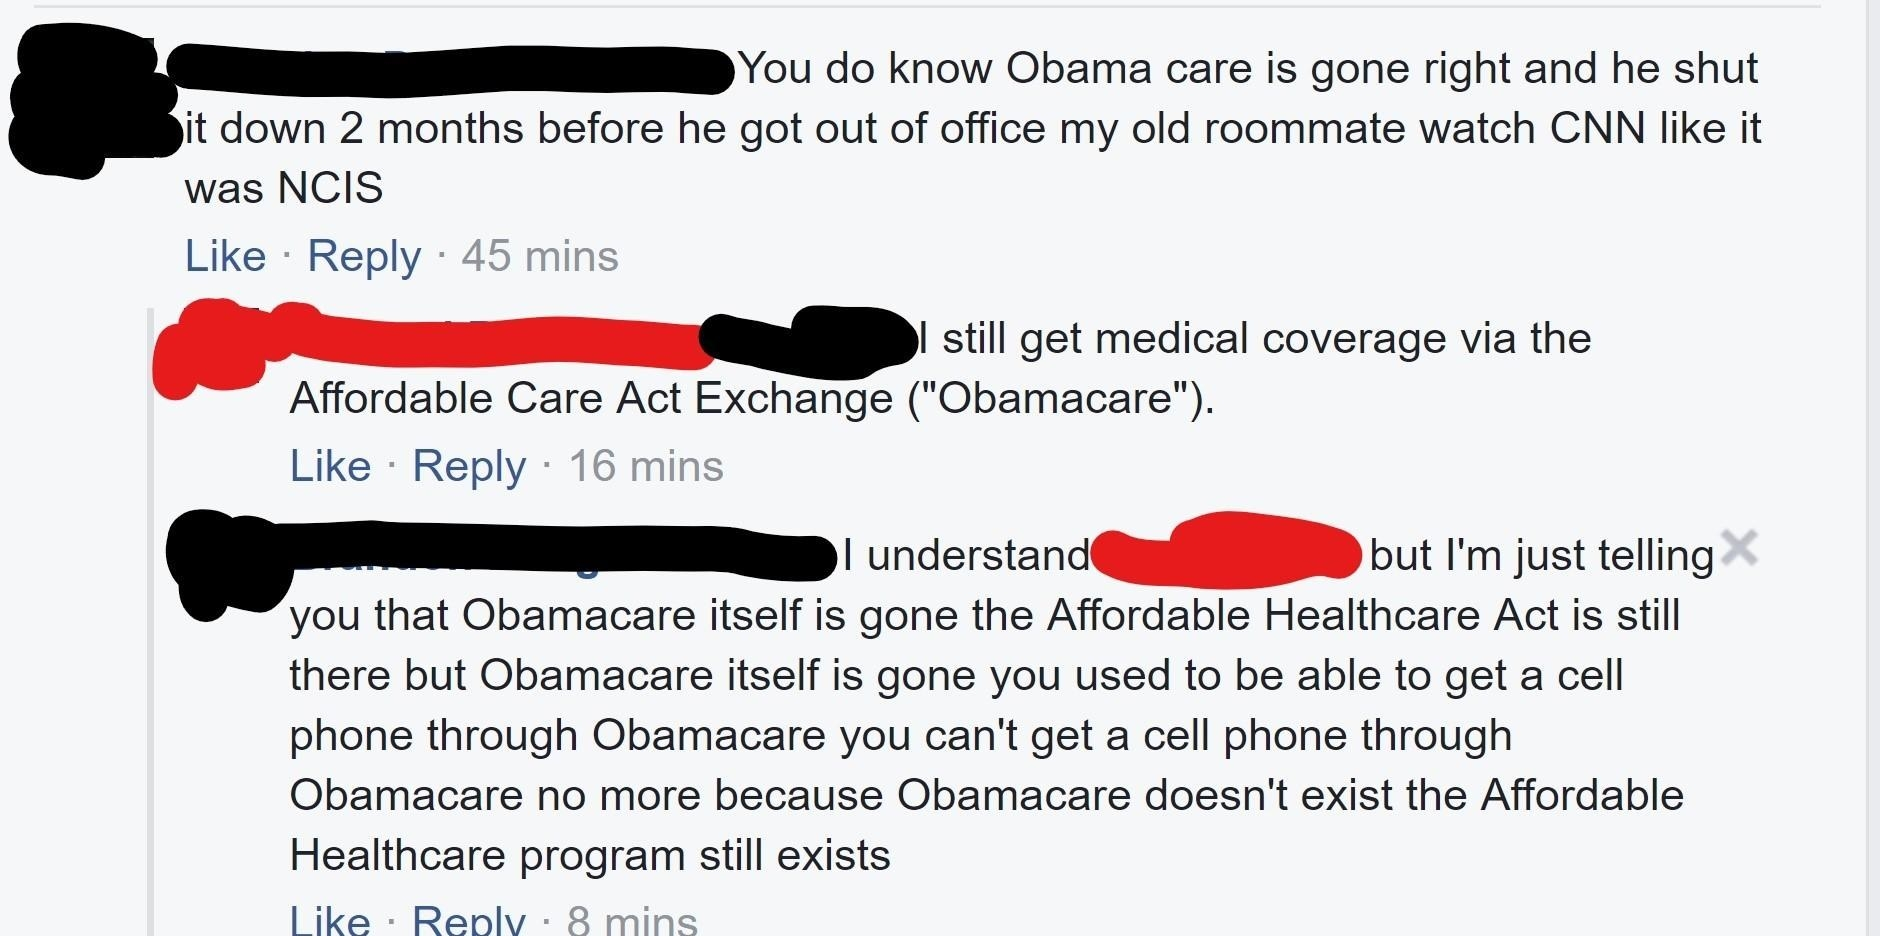 A commenter ranting about how Obamacare is gone but the Affordable Care Act is still there and you can't get a cell phone through Obamacare anymore